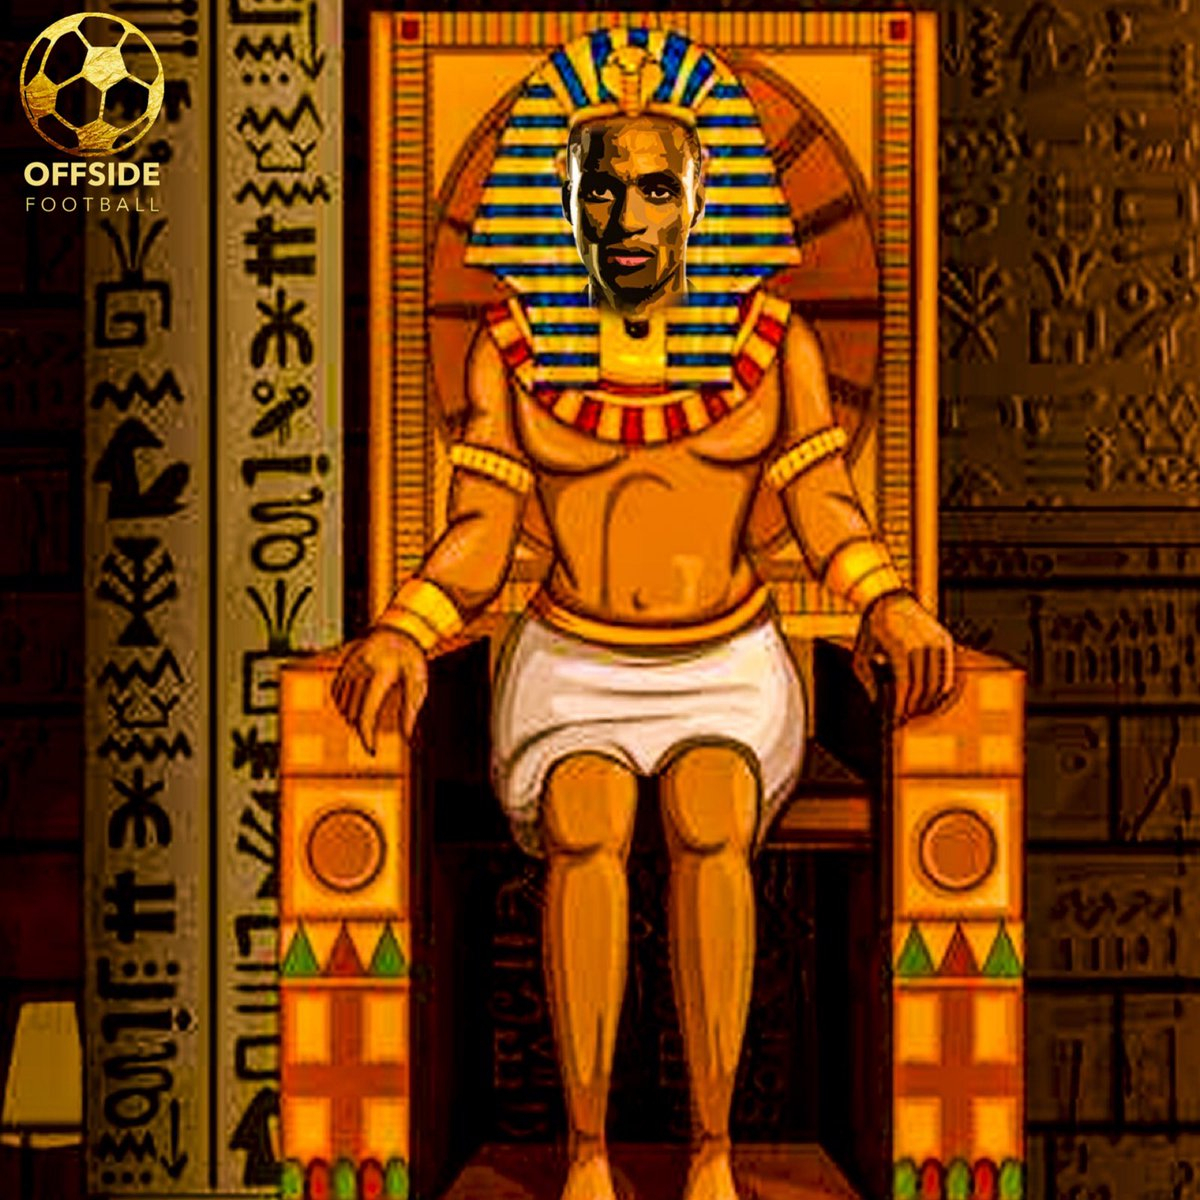 Egypt got #Lorched  There's a new Pharaoh in town , @nyoso_3  Credit: @authentictelvin   #TotalAFCON2019  #AfricanCupOfNations #BafanaBafana  #ThePharaohs  #EGYRSA #OffsideFootball<br>http://pic.twitter.com/WVJrnSx09r